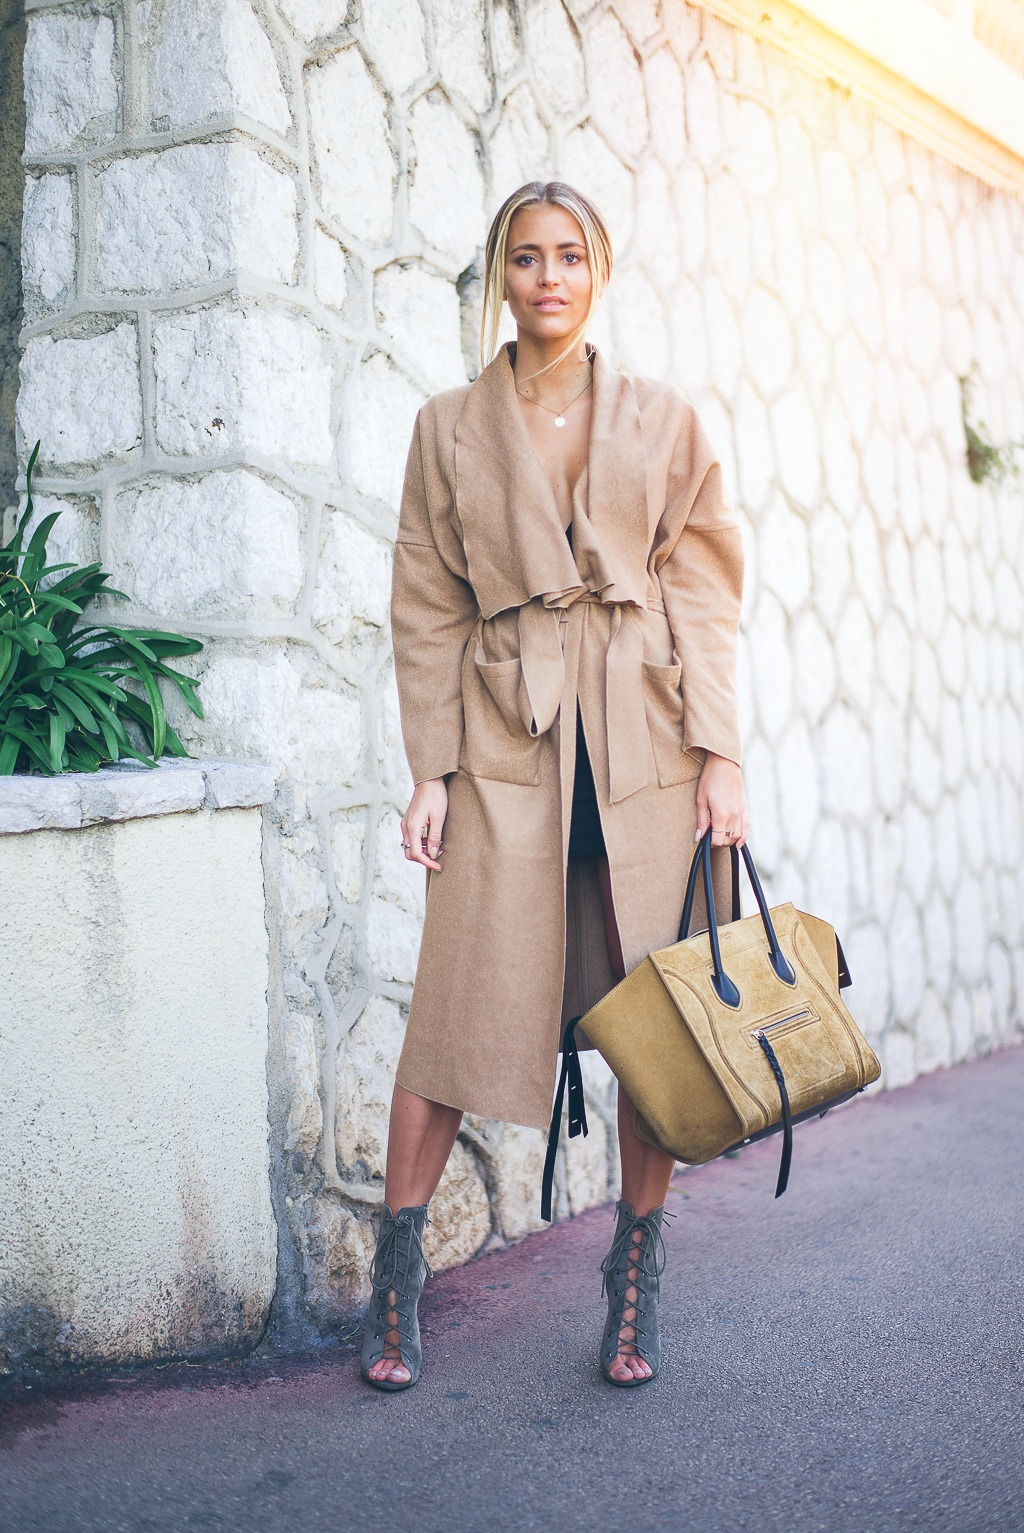 Janni Deler rocks this camel waist tie robe coat by wearing it with classic gladiator sandals and a sand coloured bag. Sticking to a general colour scheme can be very effective, as demonstrated here. Coat: Lookbook Store, Dress: Nly Trend by Janni Delér, Bag: Céline, Shoes: Public Desire.